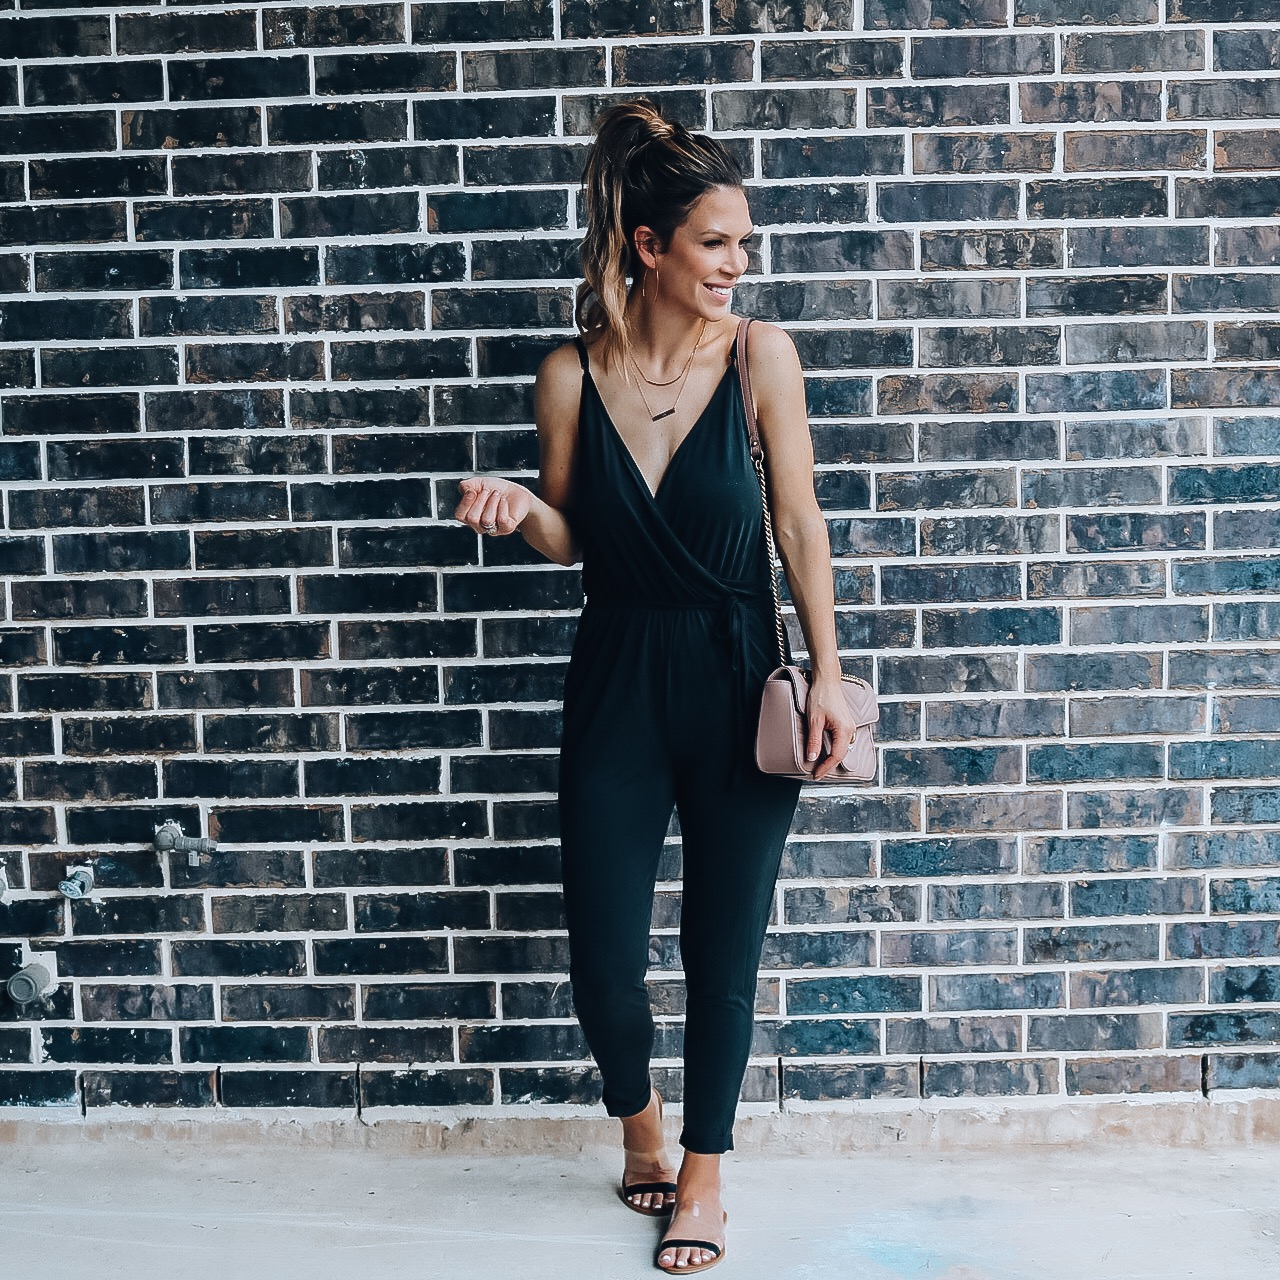 69a10ab5aea8 I have been looking for months for a casual summer jumpsuit. One of my  favorite summertime trends is jumpsuits and rompers.